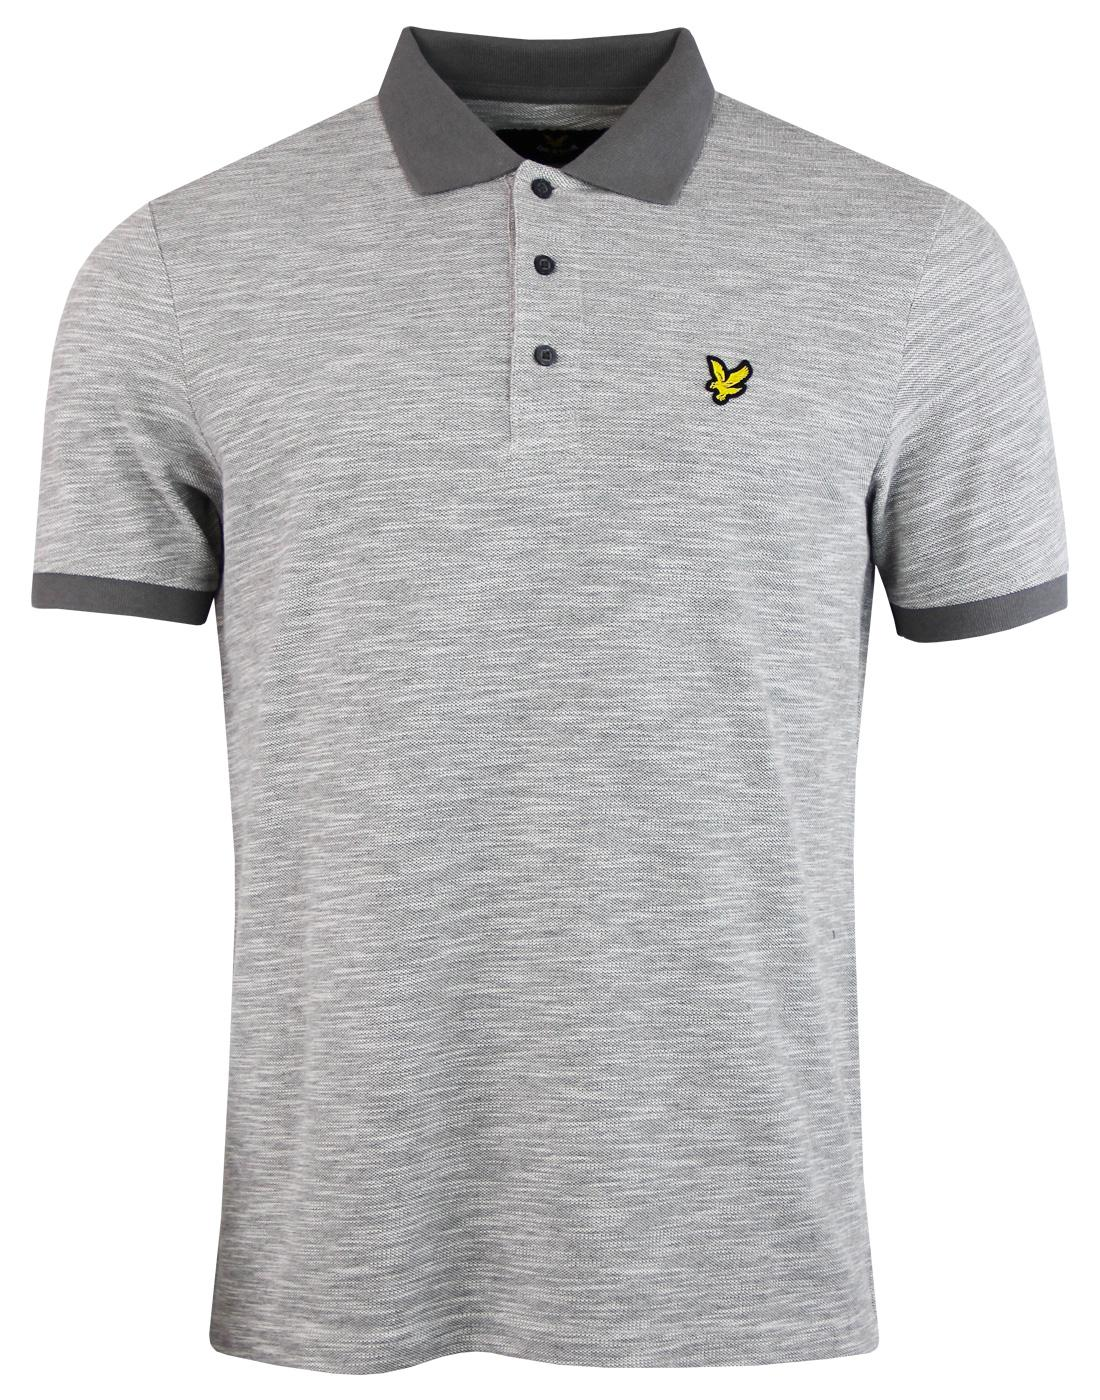 LYLE & SCOTT Retro Mod Oxford Slub Polo Shirt